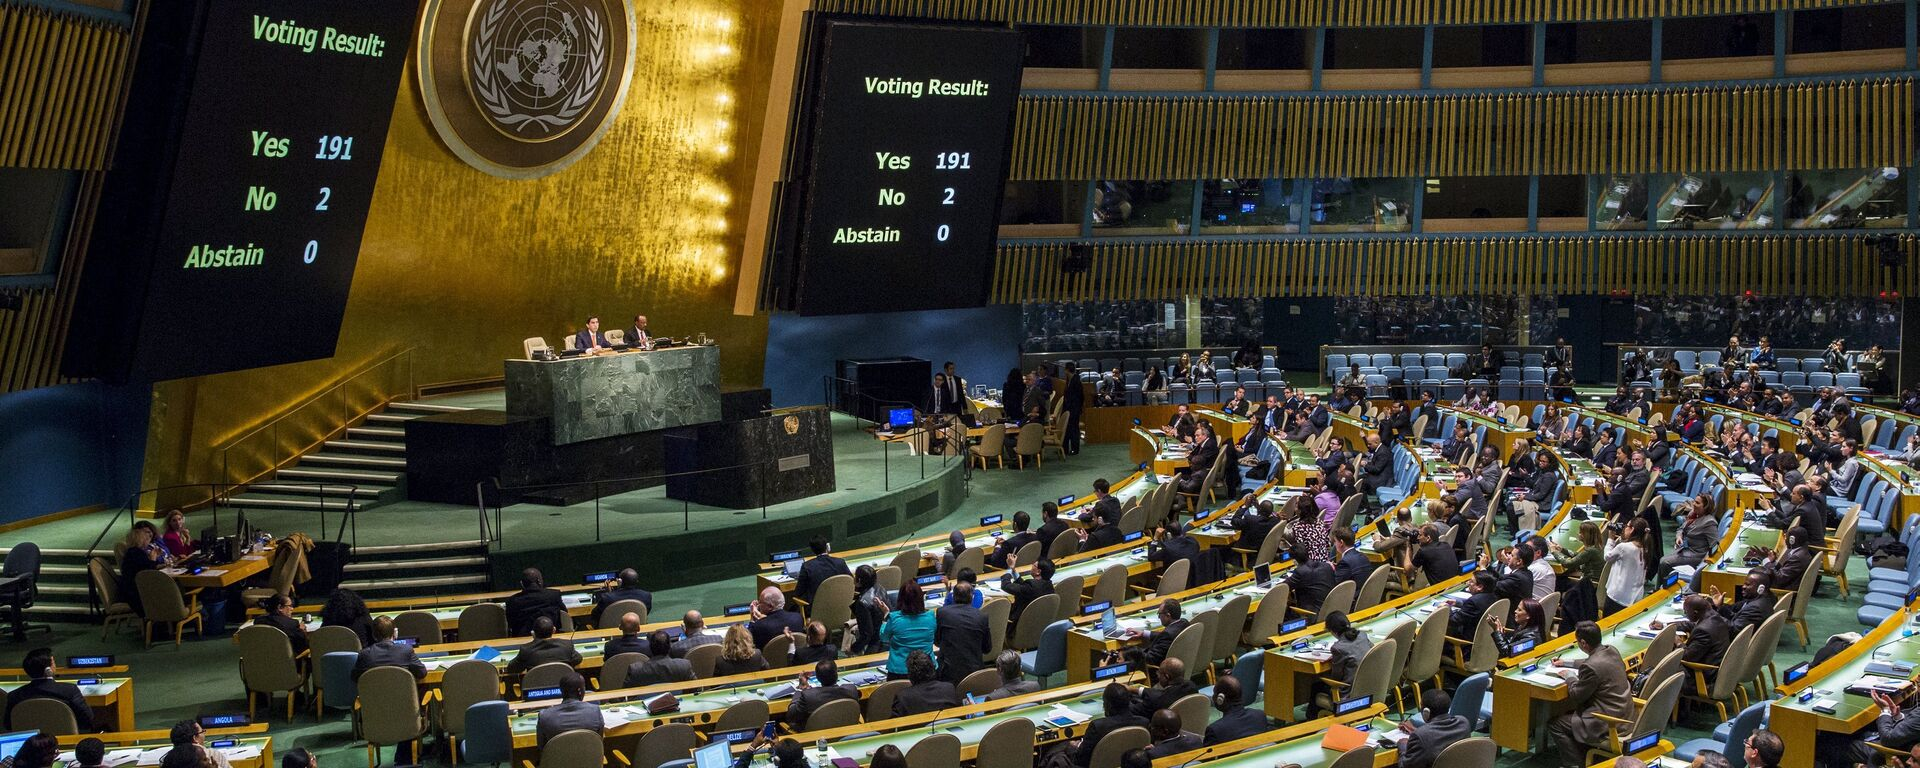 Voting results are shown on boards following a United Nations General Assembly  - Sputnik Mundo, 1920, 18.06.2021